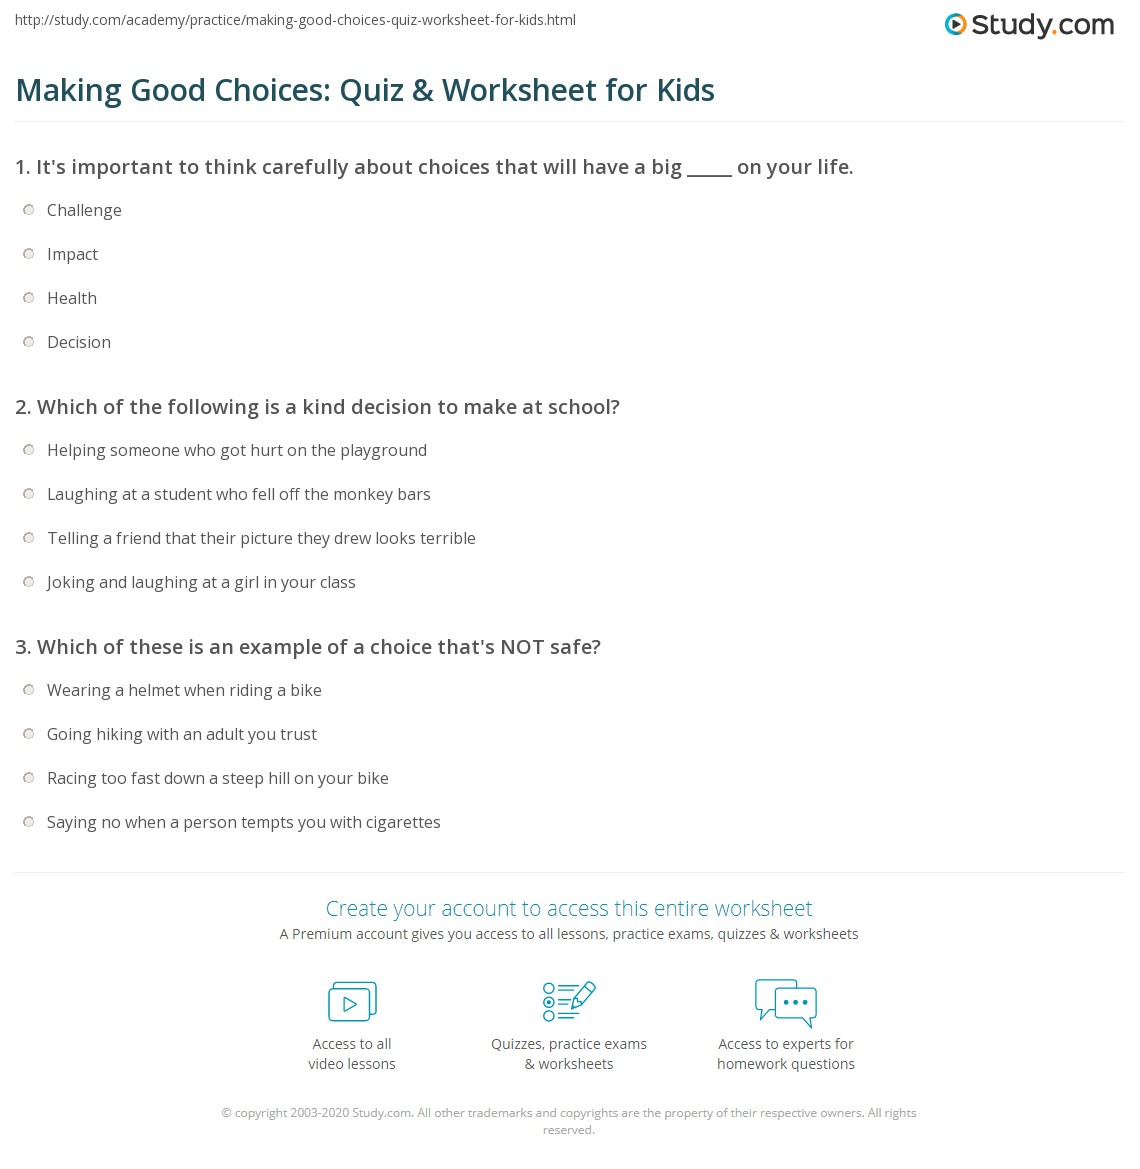 Making Good Choices: Quiz & Worksheet for Kids | Study.com